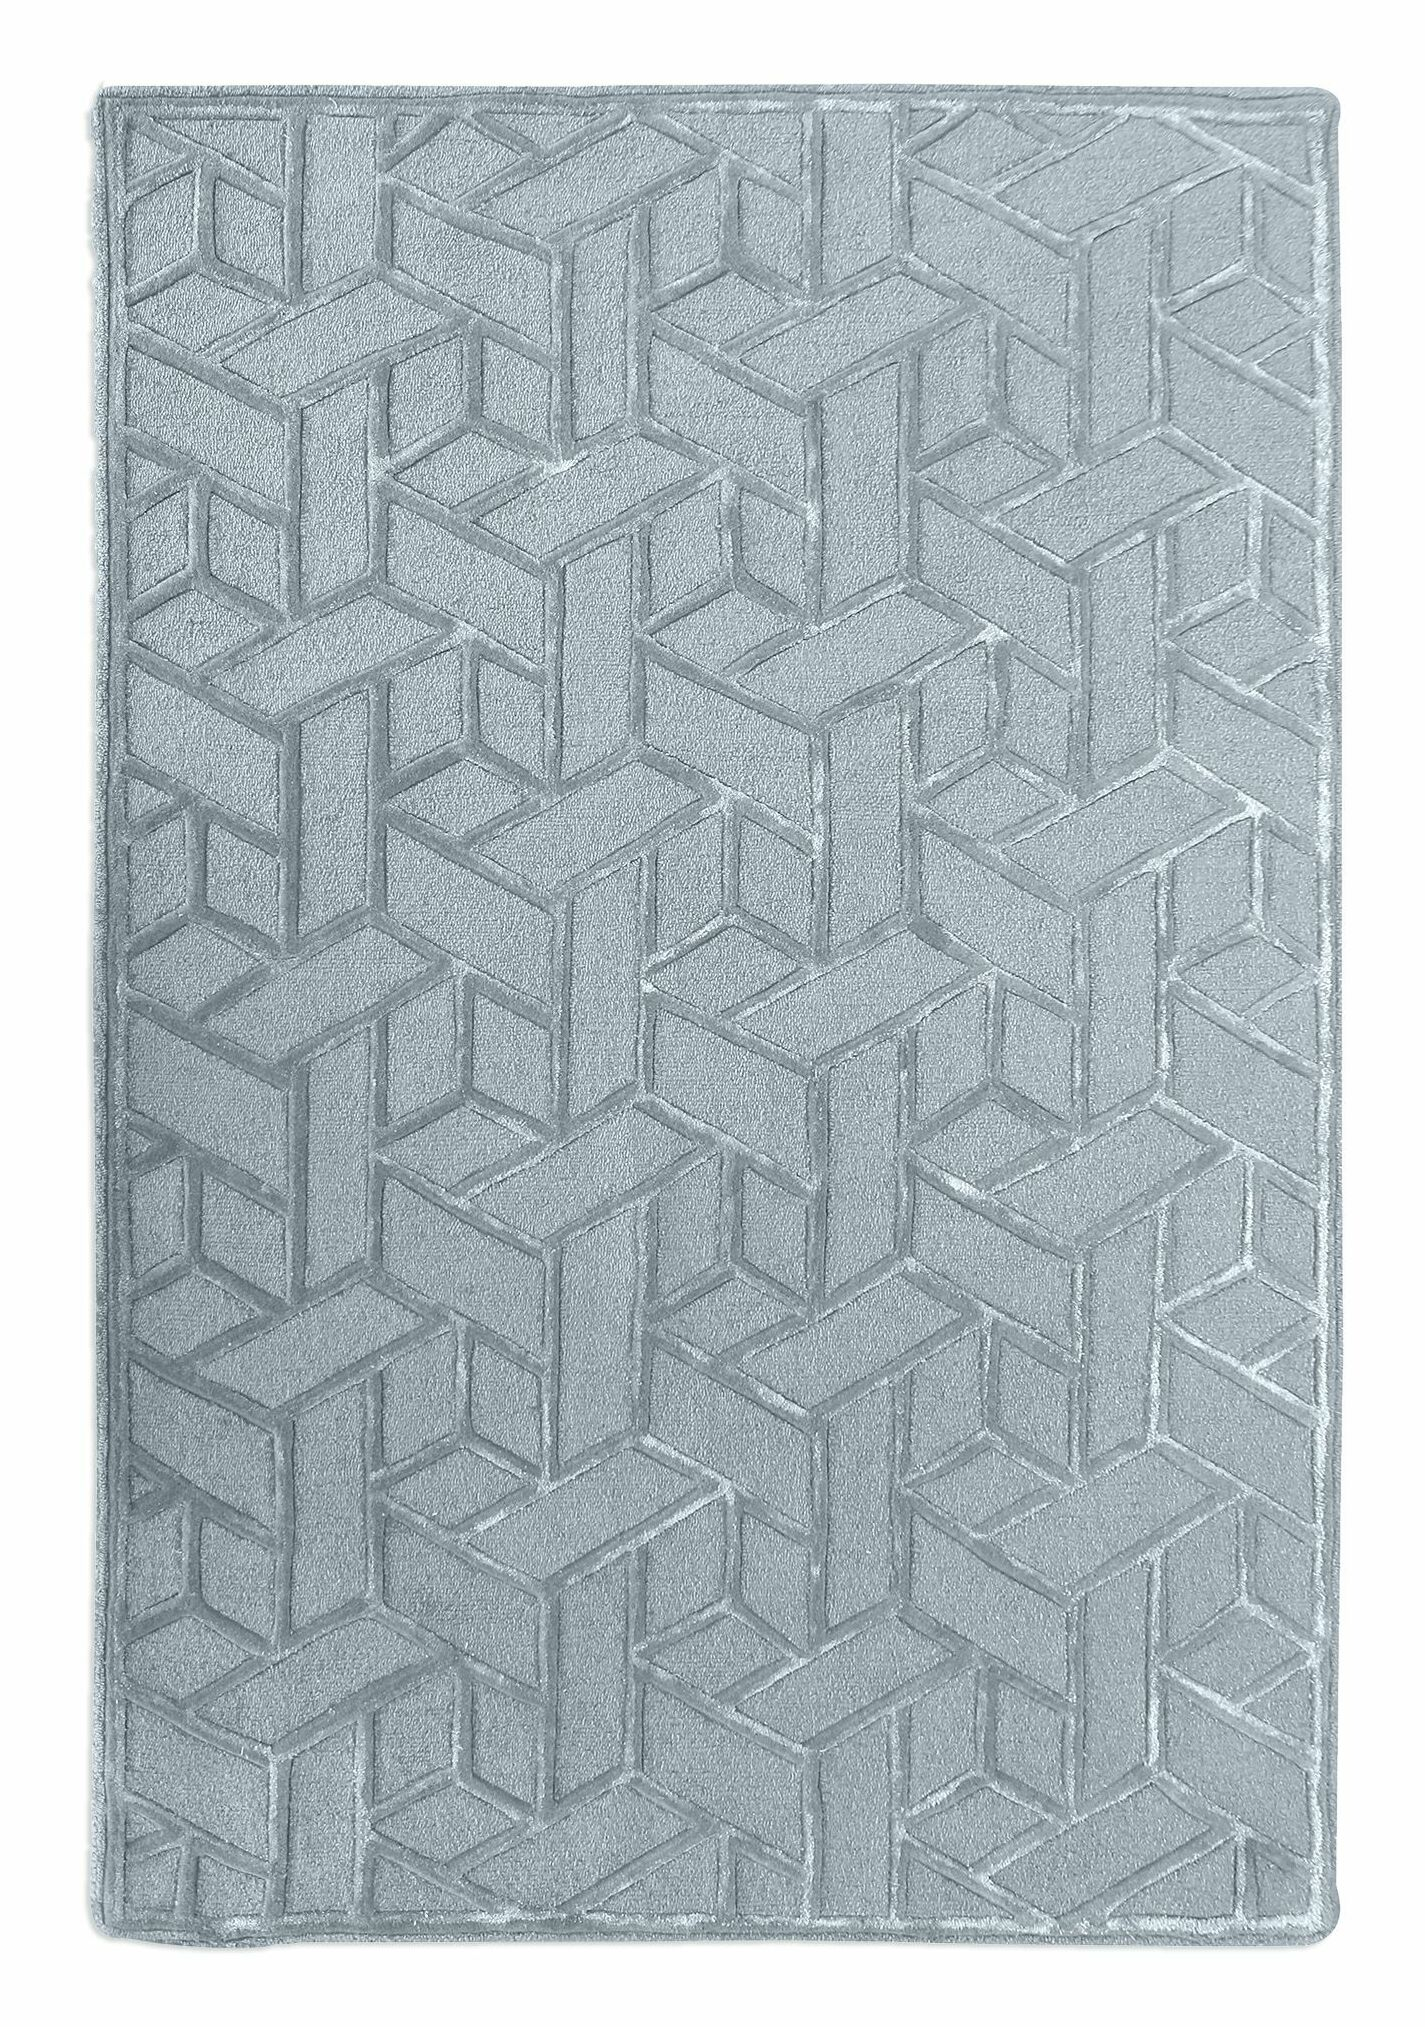 Netherton Hand Tufted Stone Gray Area Rug Rug Size: Rectangle 9' x 12'